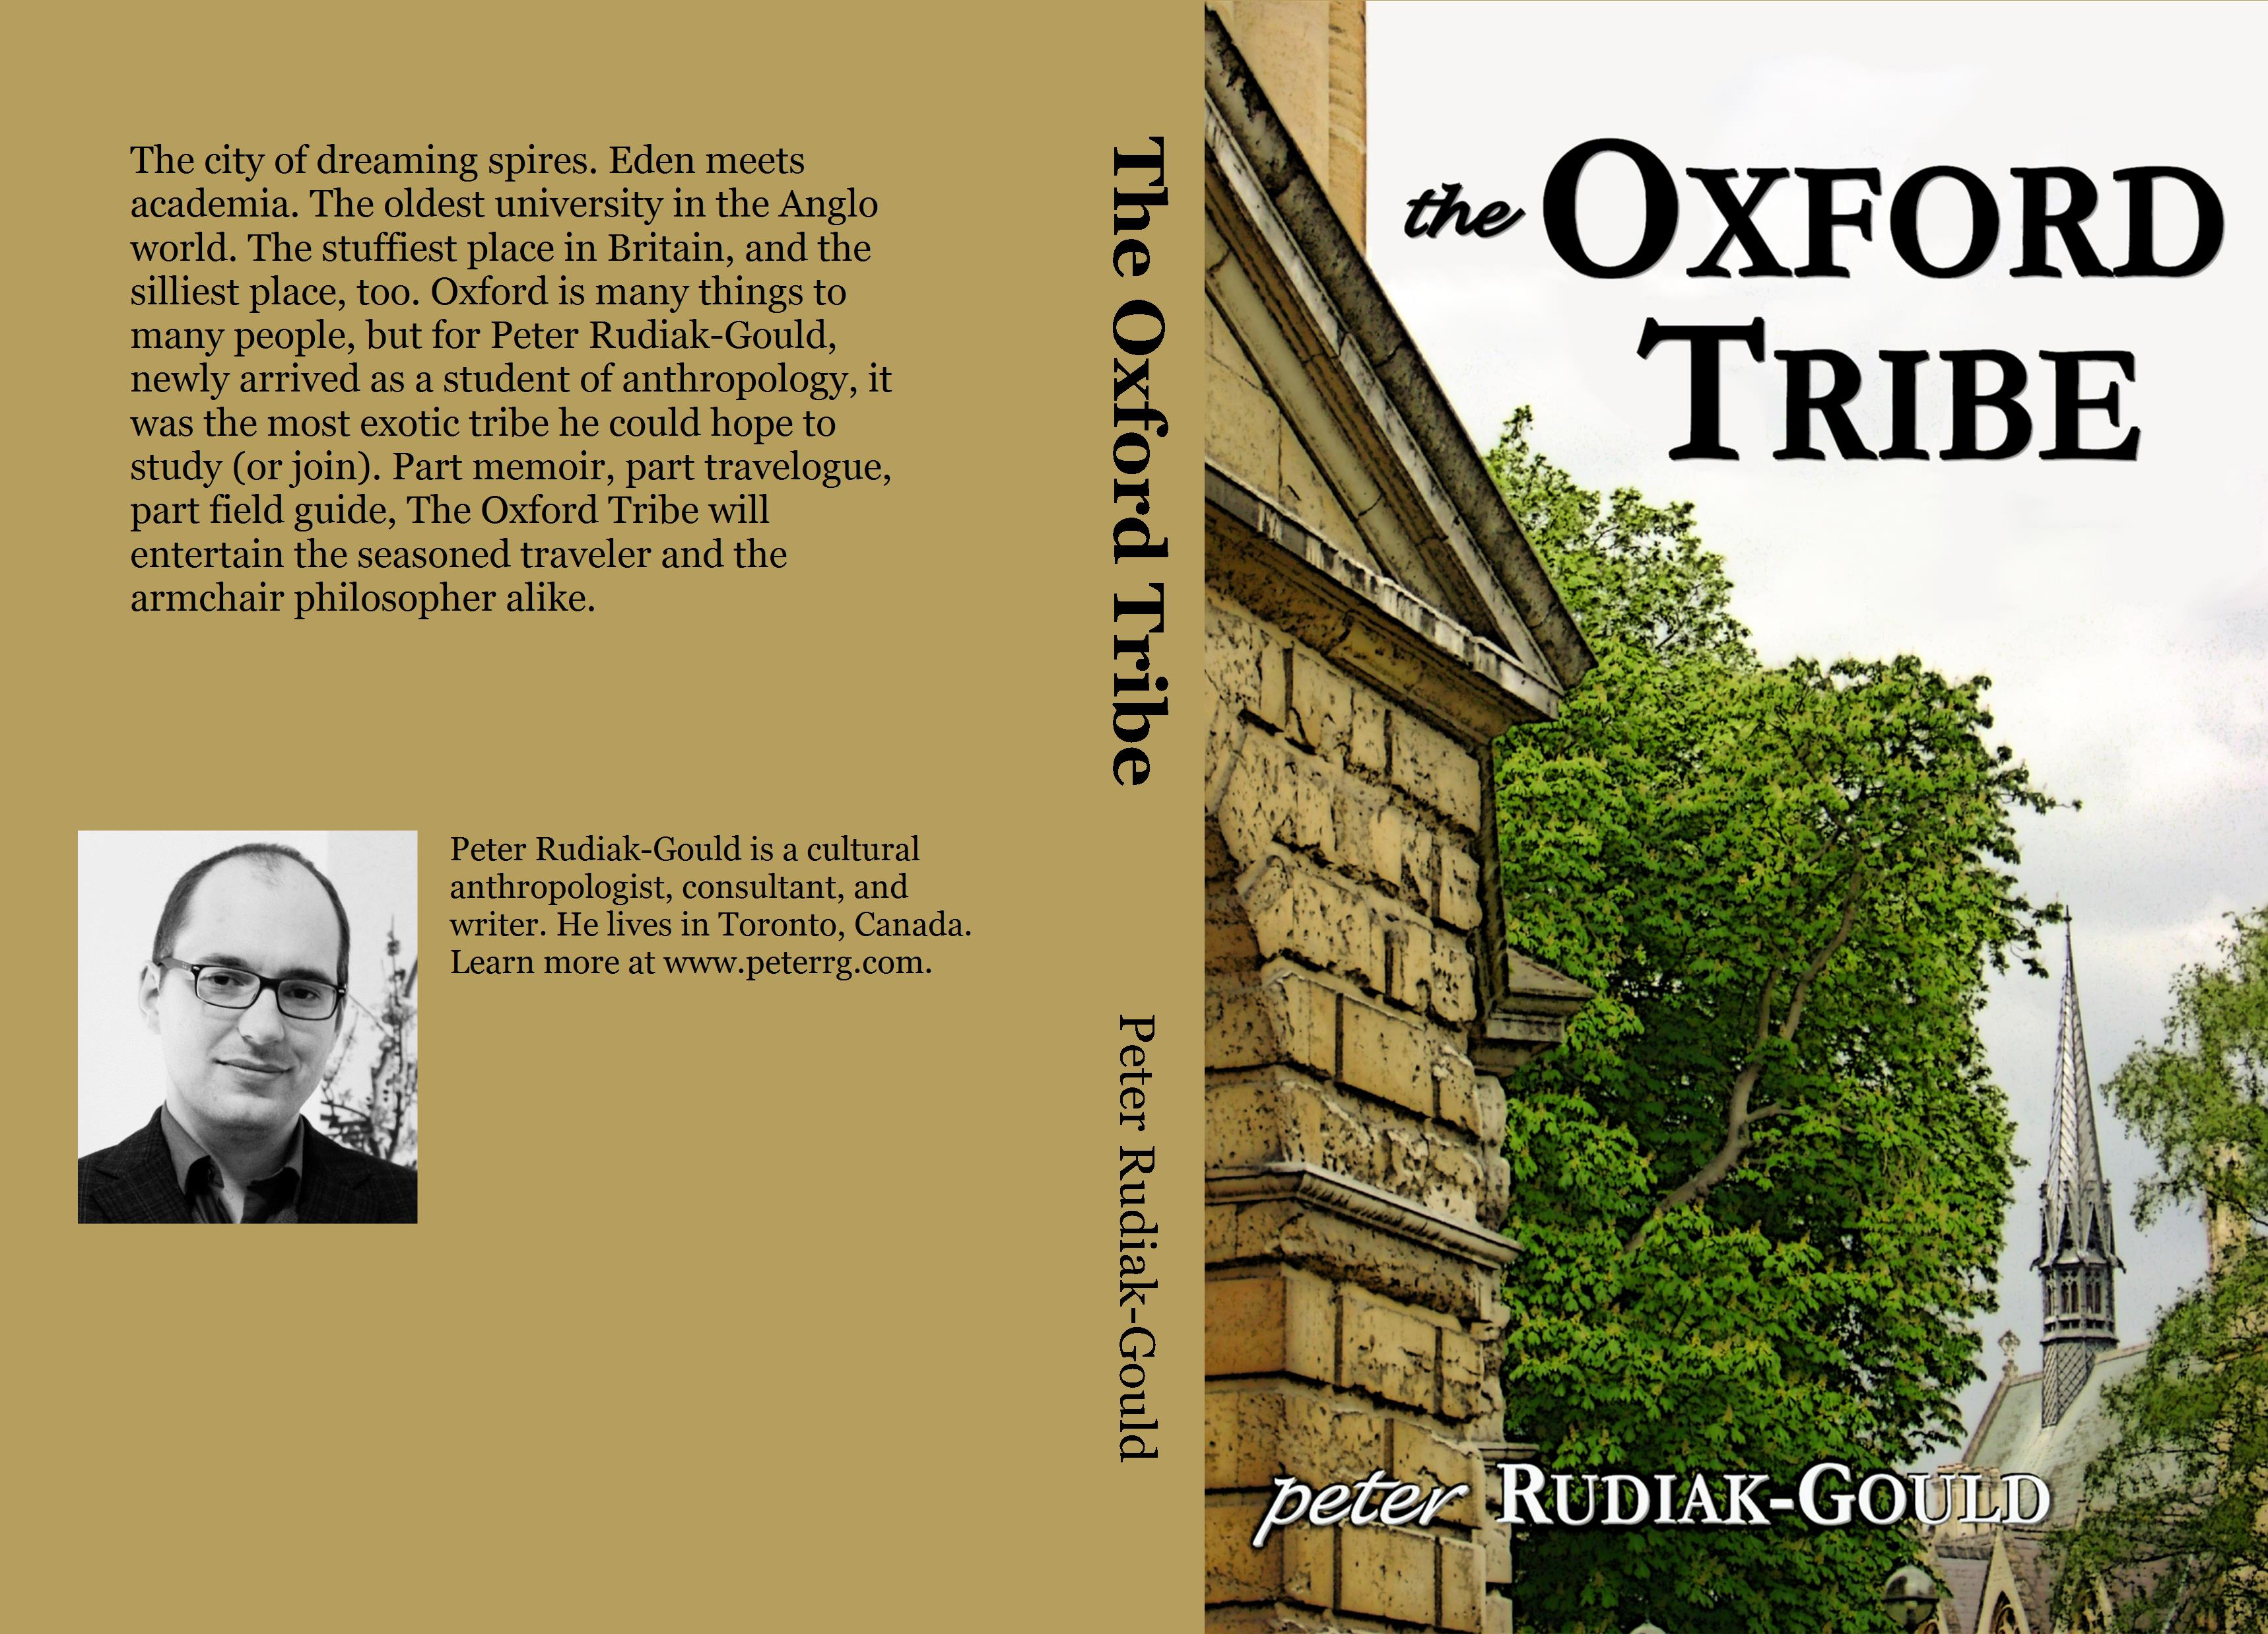 The Oxford Tribe cover image